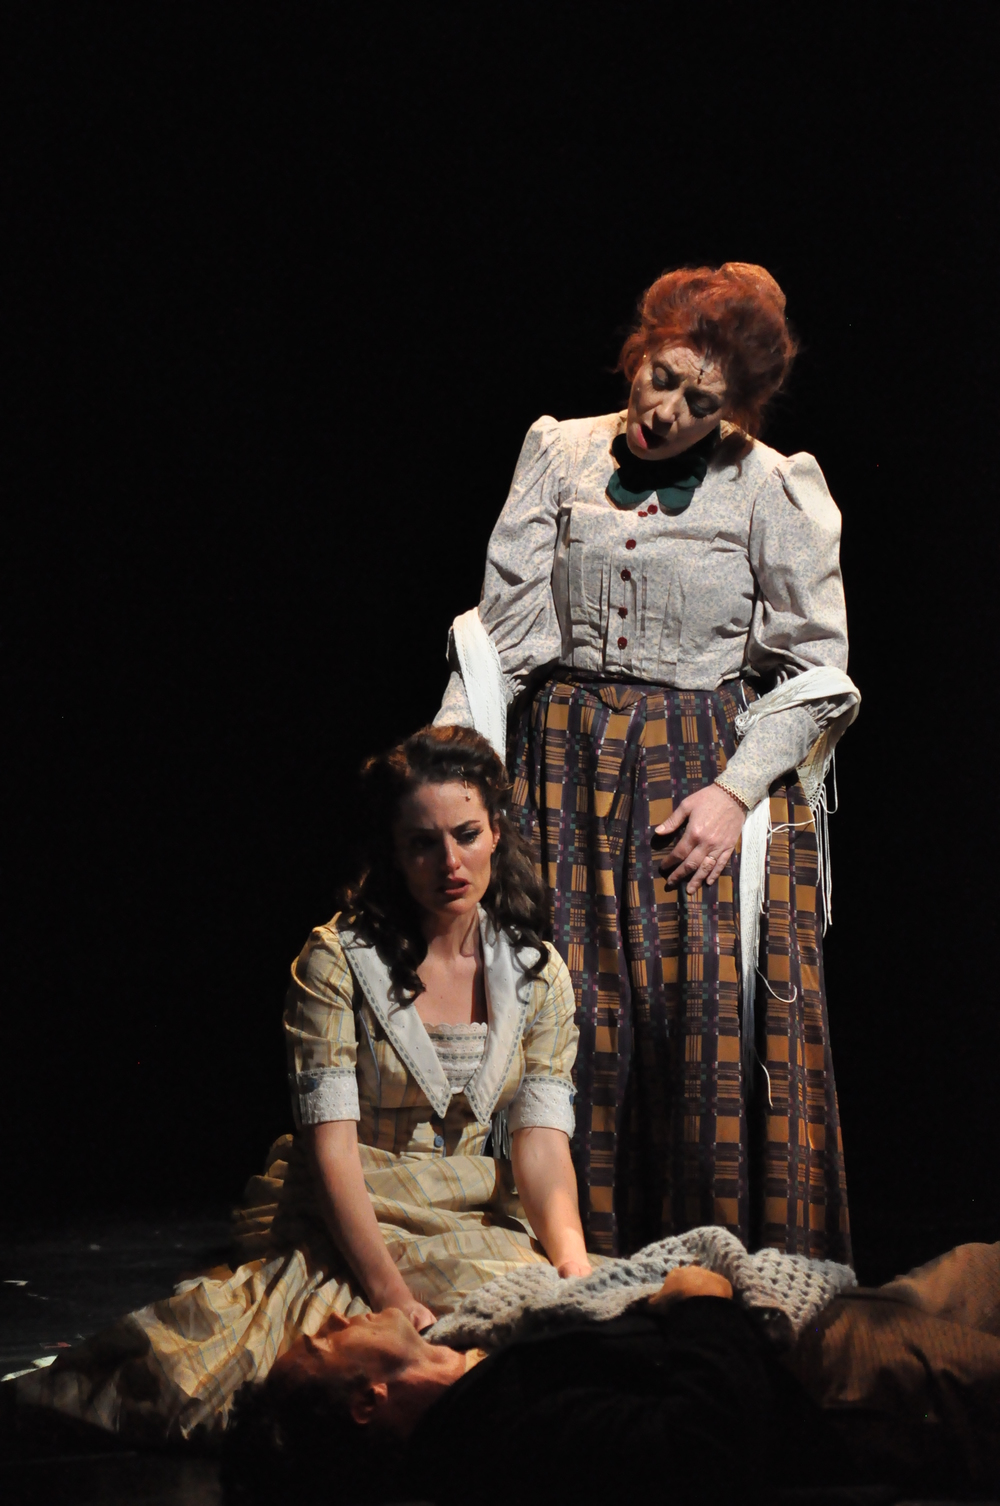 Nellie Fowler (Leigh Barrett*) sings to Julie Jordan (Jennifer Ellis*) during a key moment in Reagle Music Theatre of Greater Boston's  Carousel    (Photo Credit: Reagle Music Theatre/©Herb Philpott) (* Denotes a Member of Actors' Equity Association).